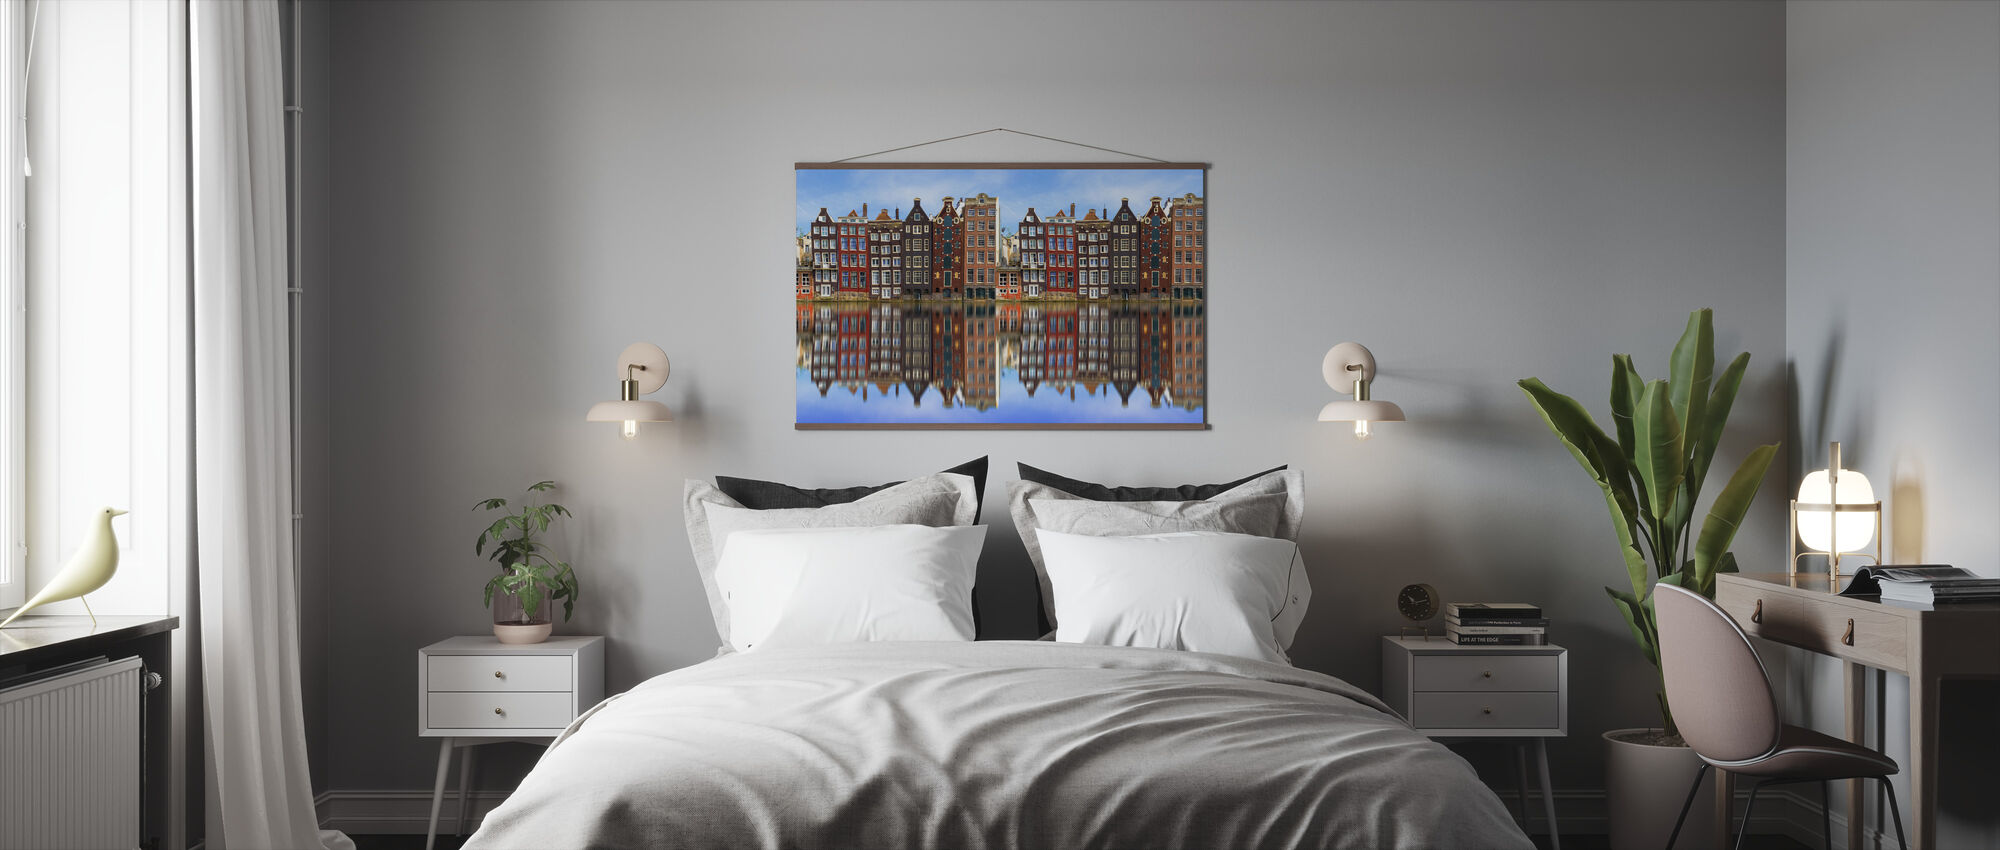 Old Amsterdam Houses - Poster - Bedroom